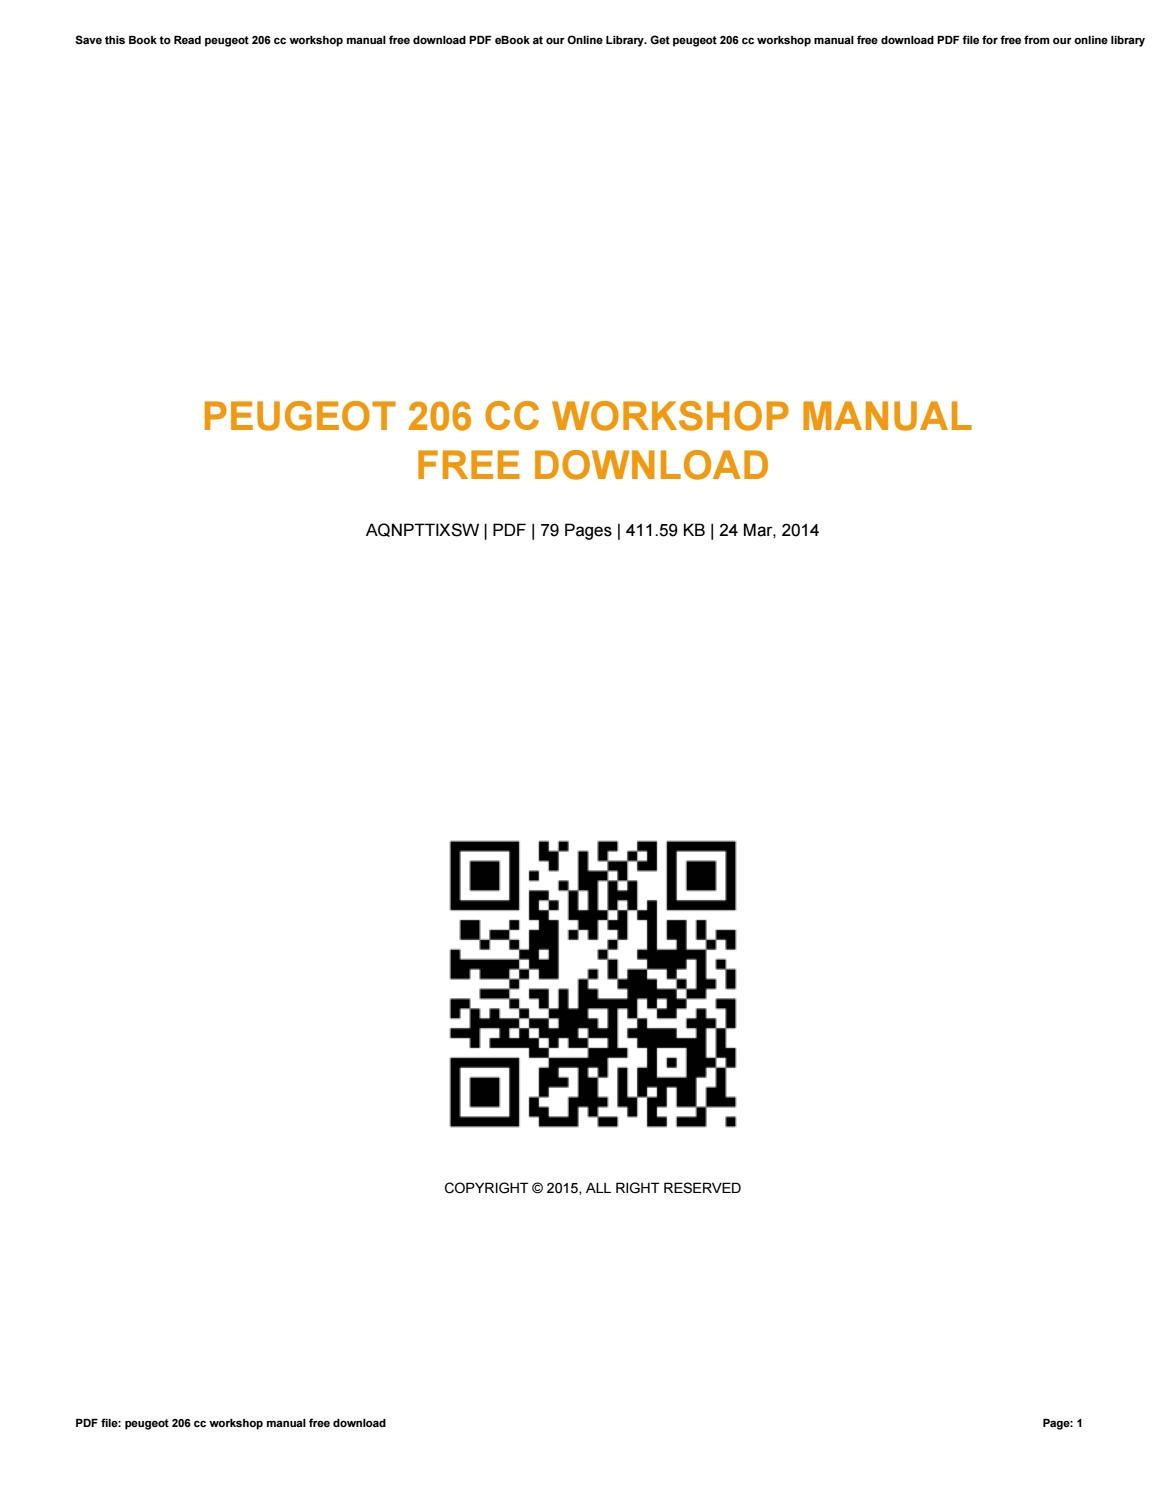 Download Software Werkplaatsboek Peugeot 206 Pdf